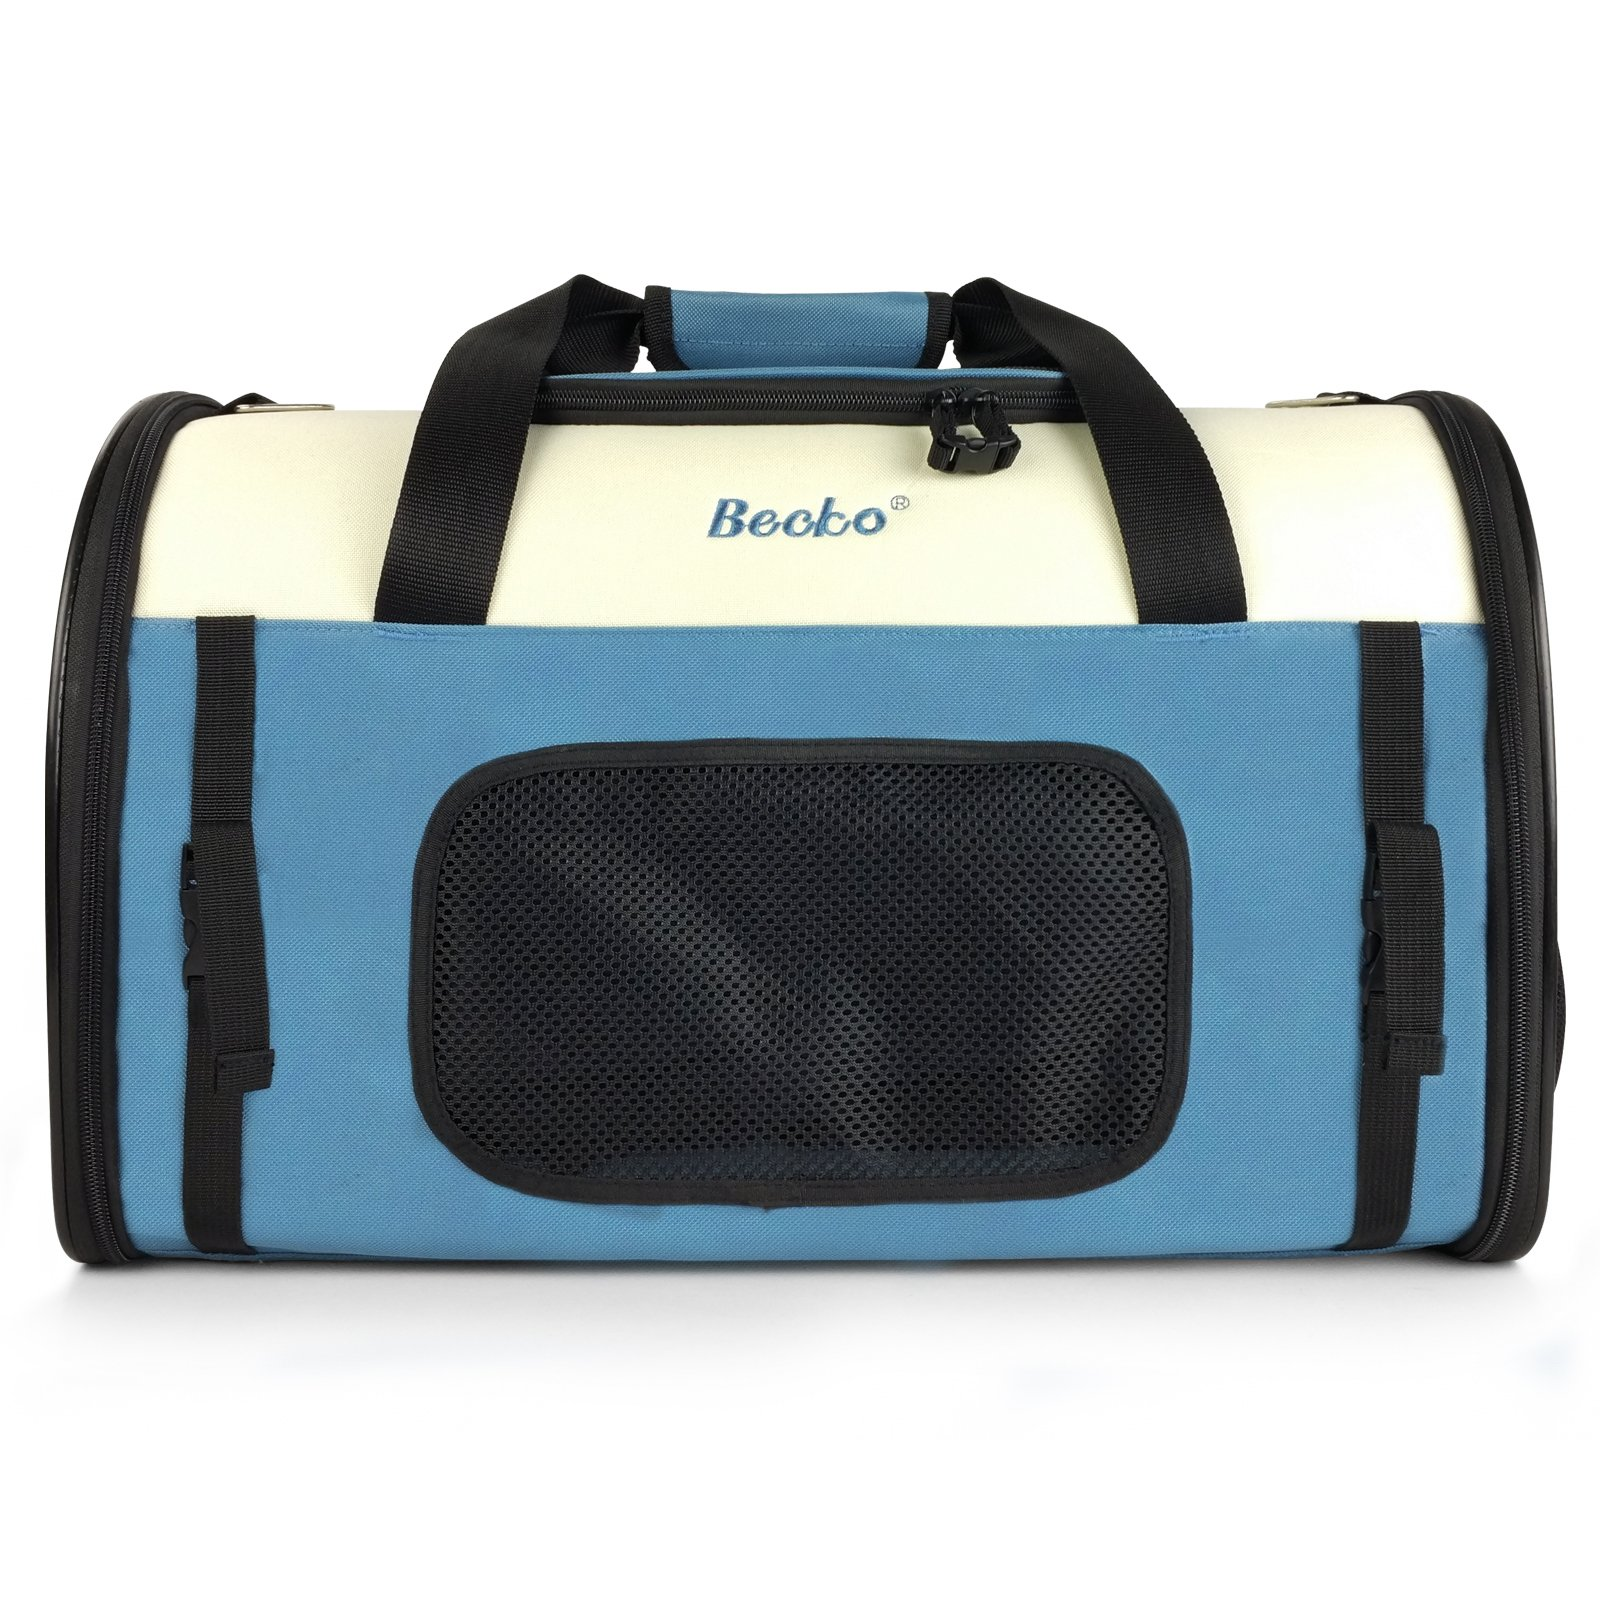 Becko Expandable Foldable Pet Carrier Travel Handbag with Padding and Extension (Blue) by Becko (Image #2)